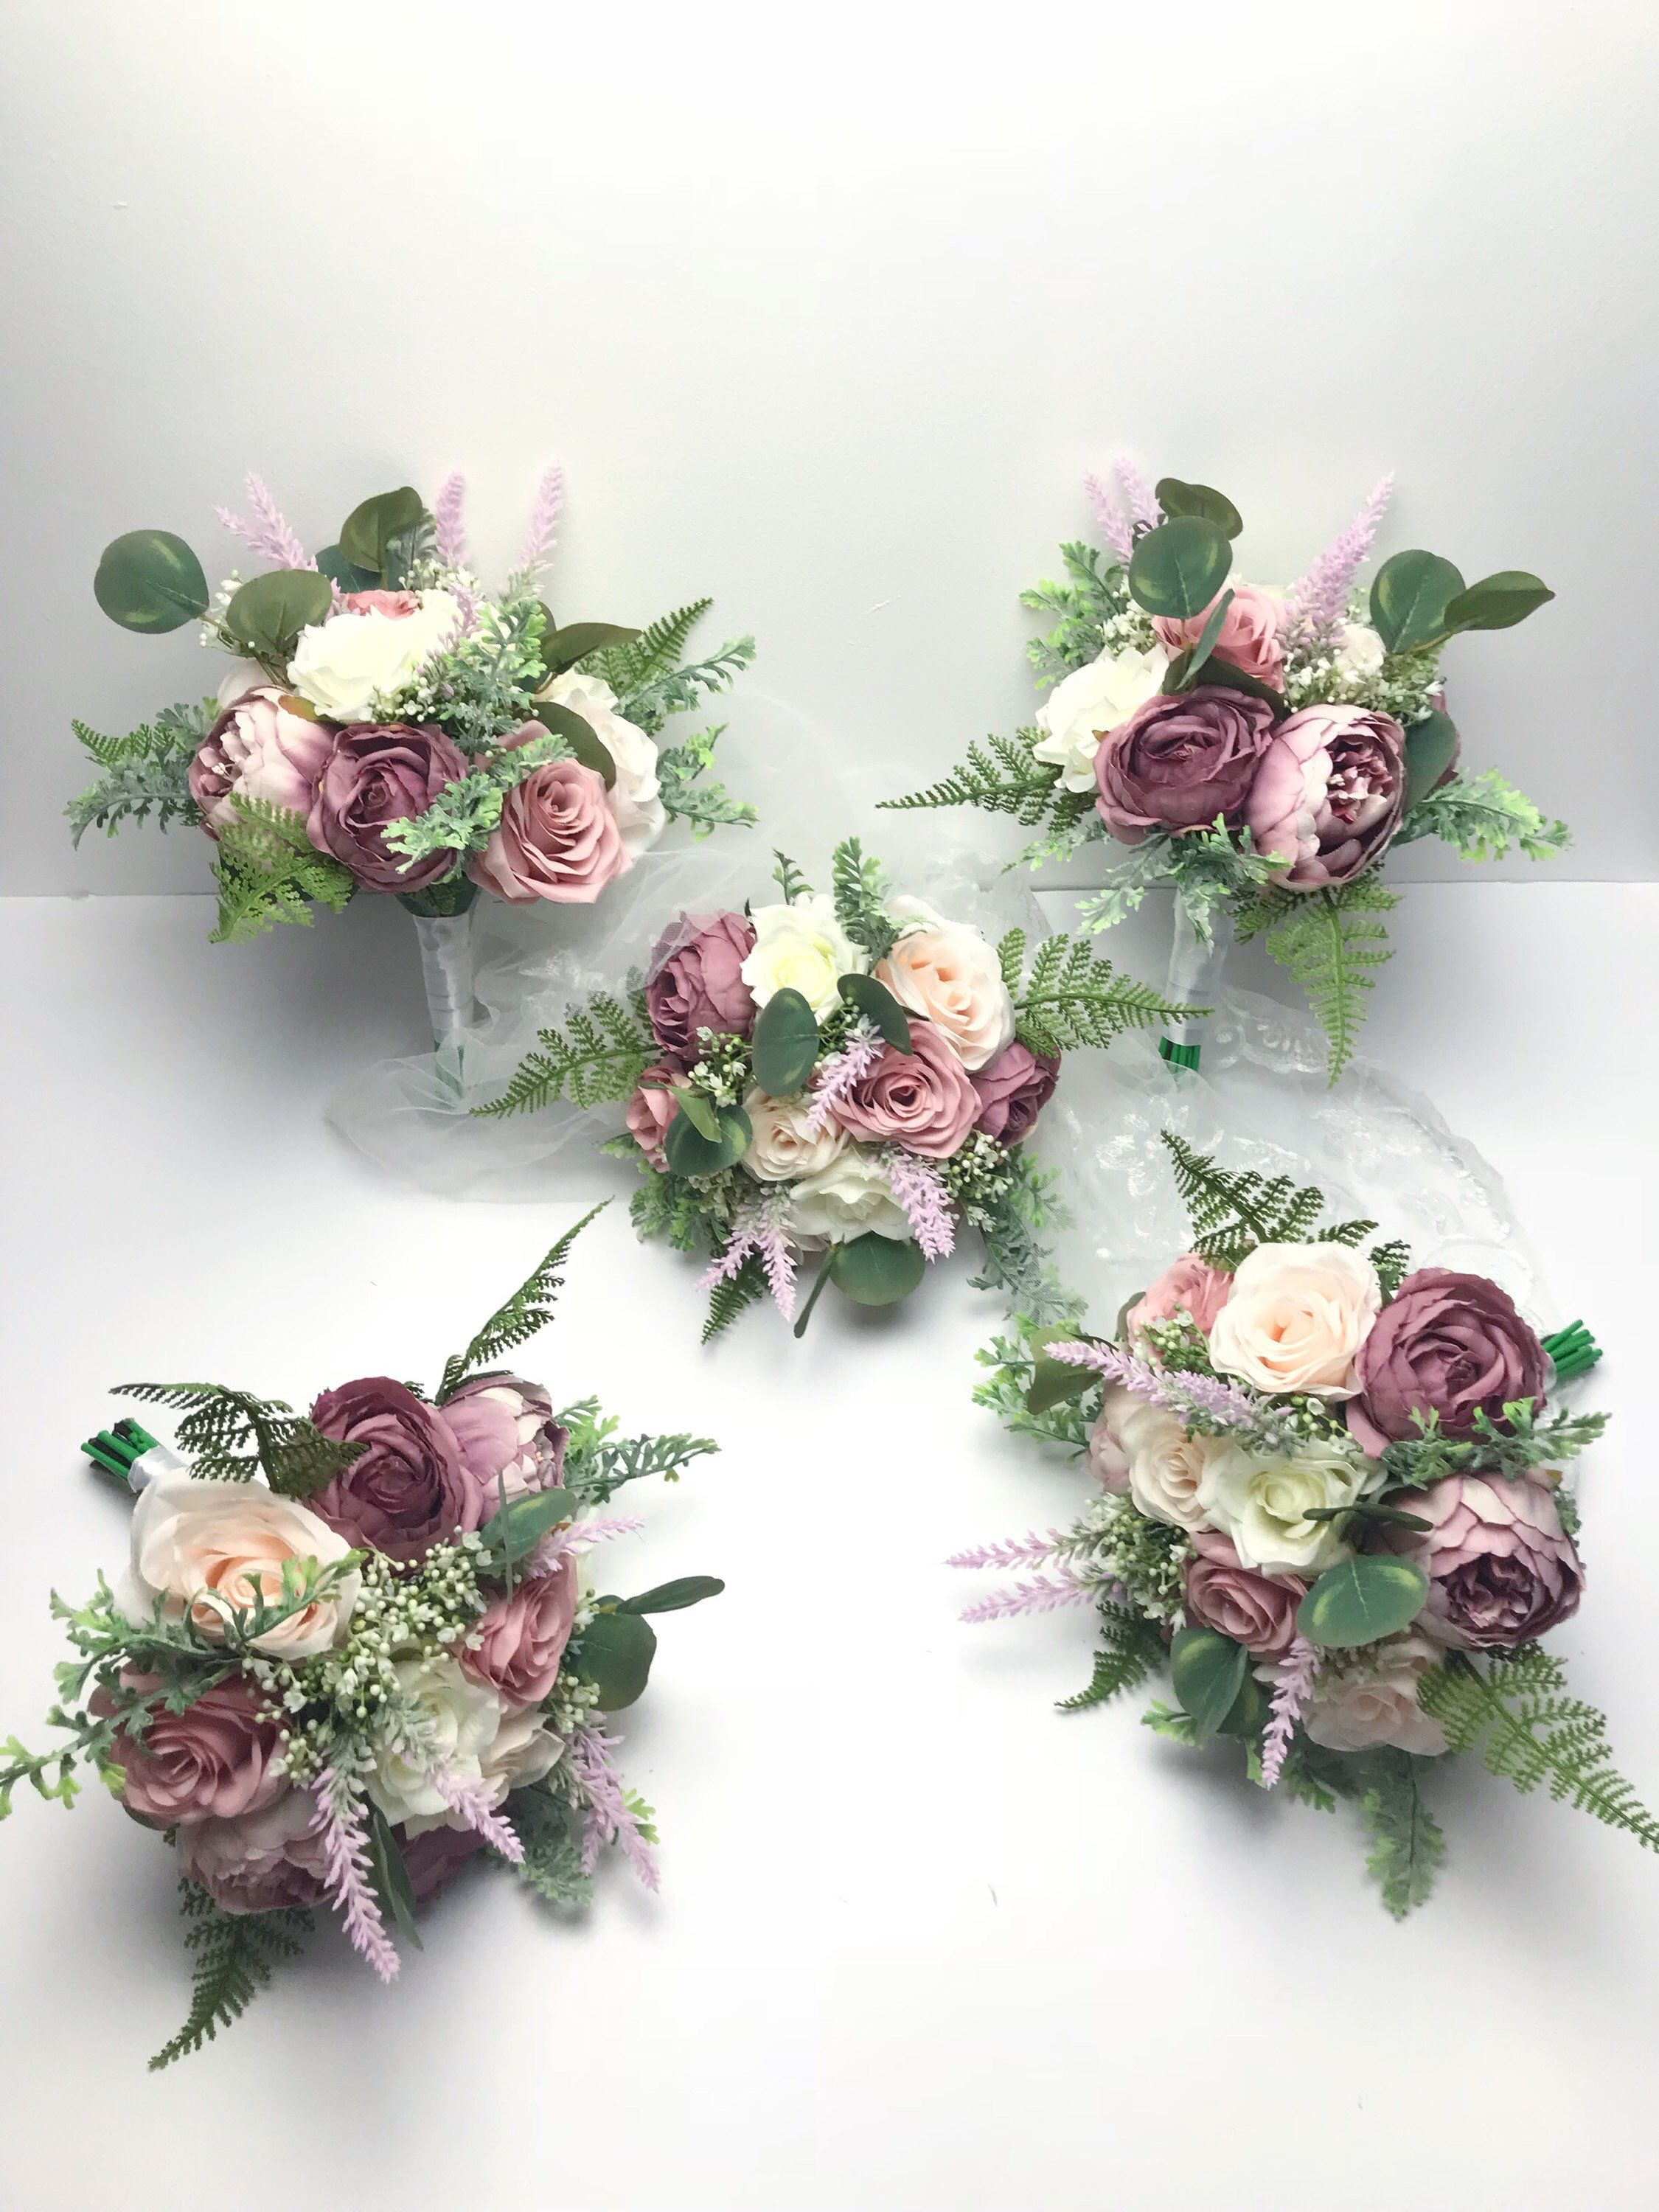 Set of 5 Bridesmaids Bouquets, Wedding Bouquets, Spring Wedding #bridesmaidbouquets